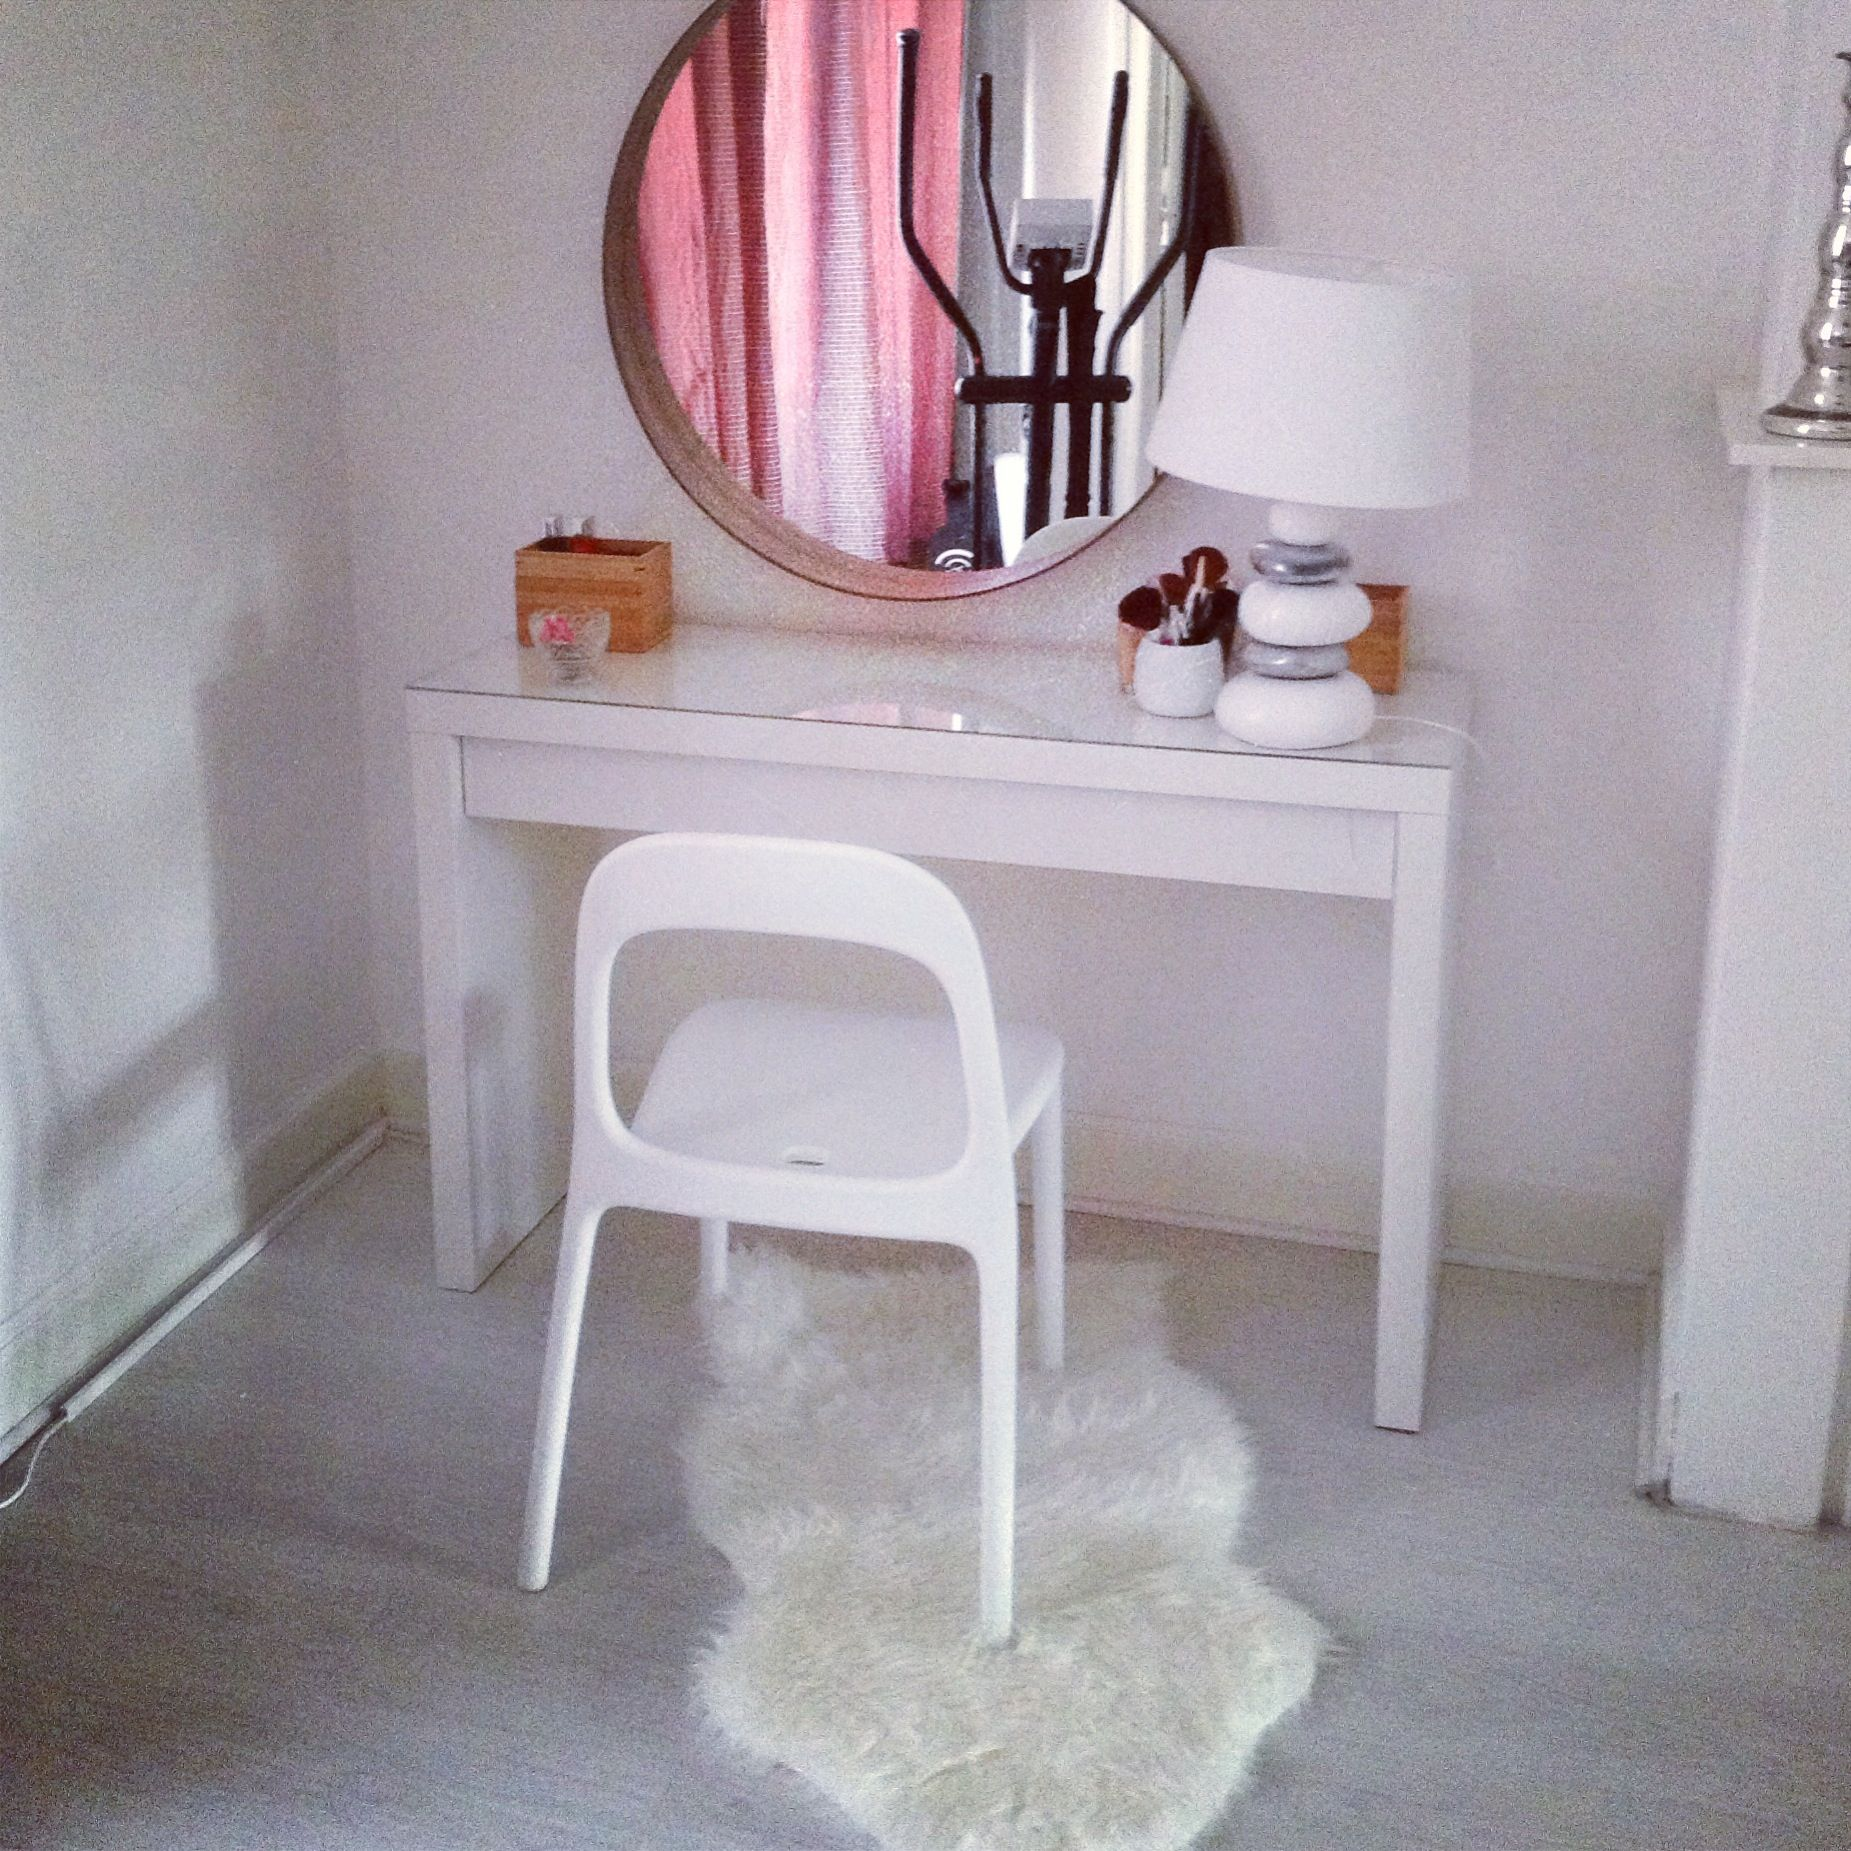 huge discount 8b43a f180d Ikea vanity table simple, clean, inexpensive | Home Ideas <3 ...